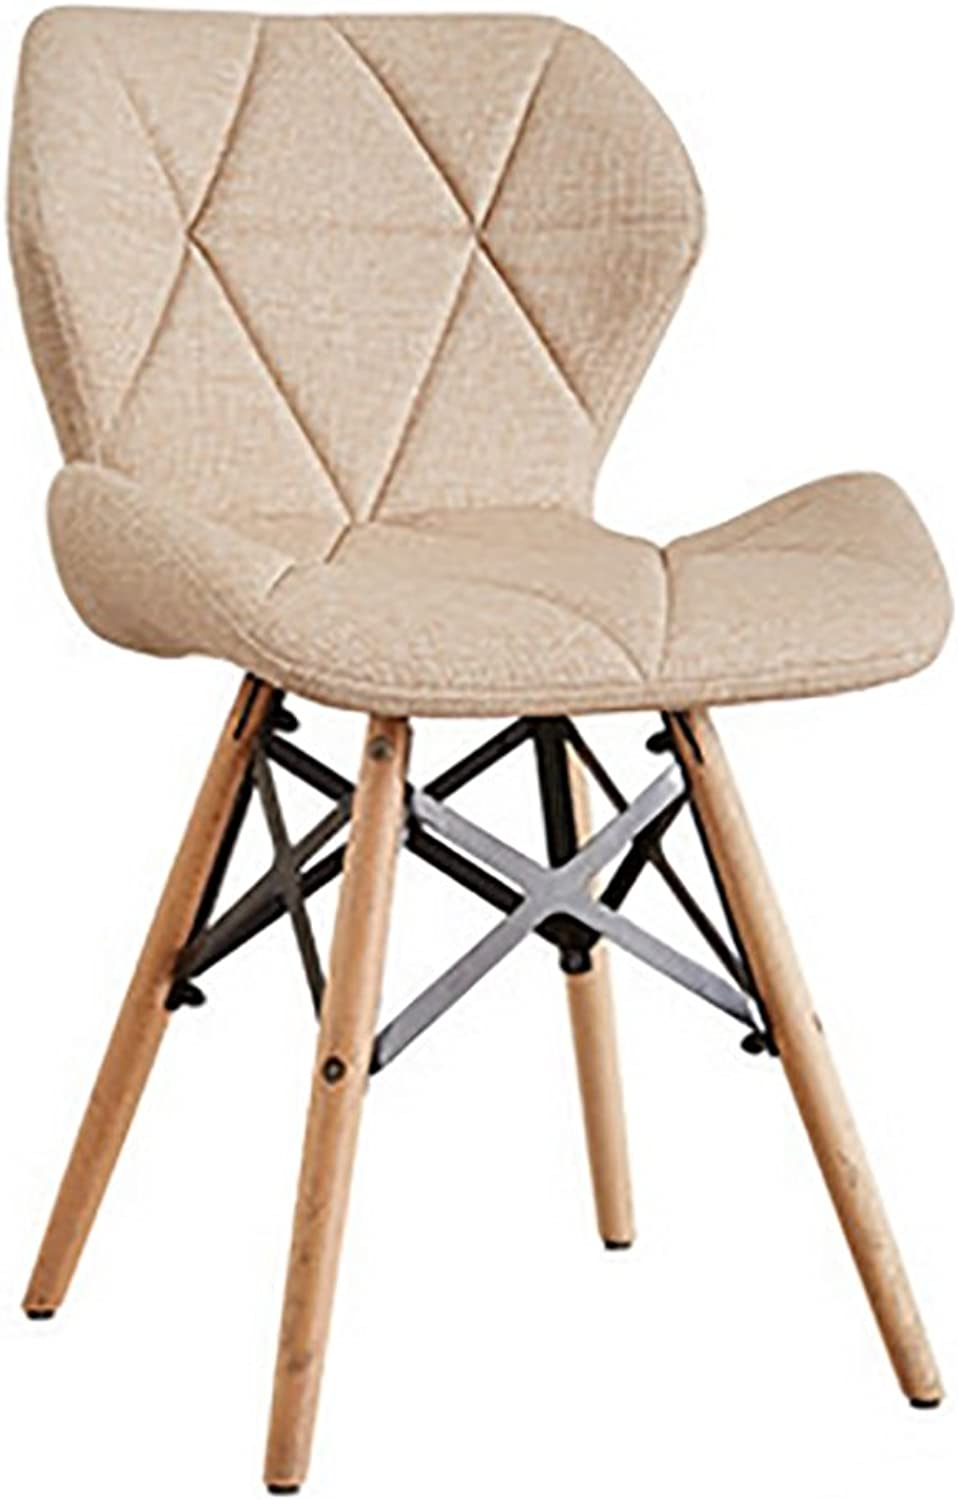 T-Day Bar Stool Stools, bar stools, Chairs, Sofas,Make-up Chair BackChair North European Dining Chair Household desks and Chairs (color   O)